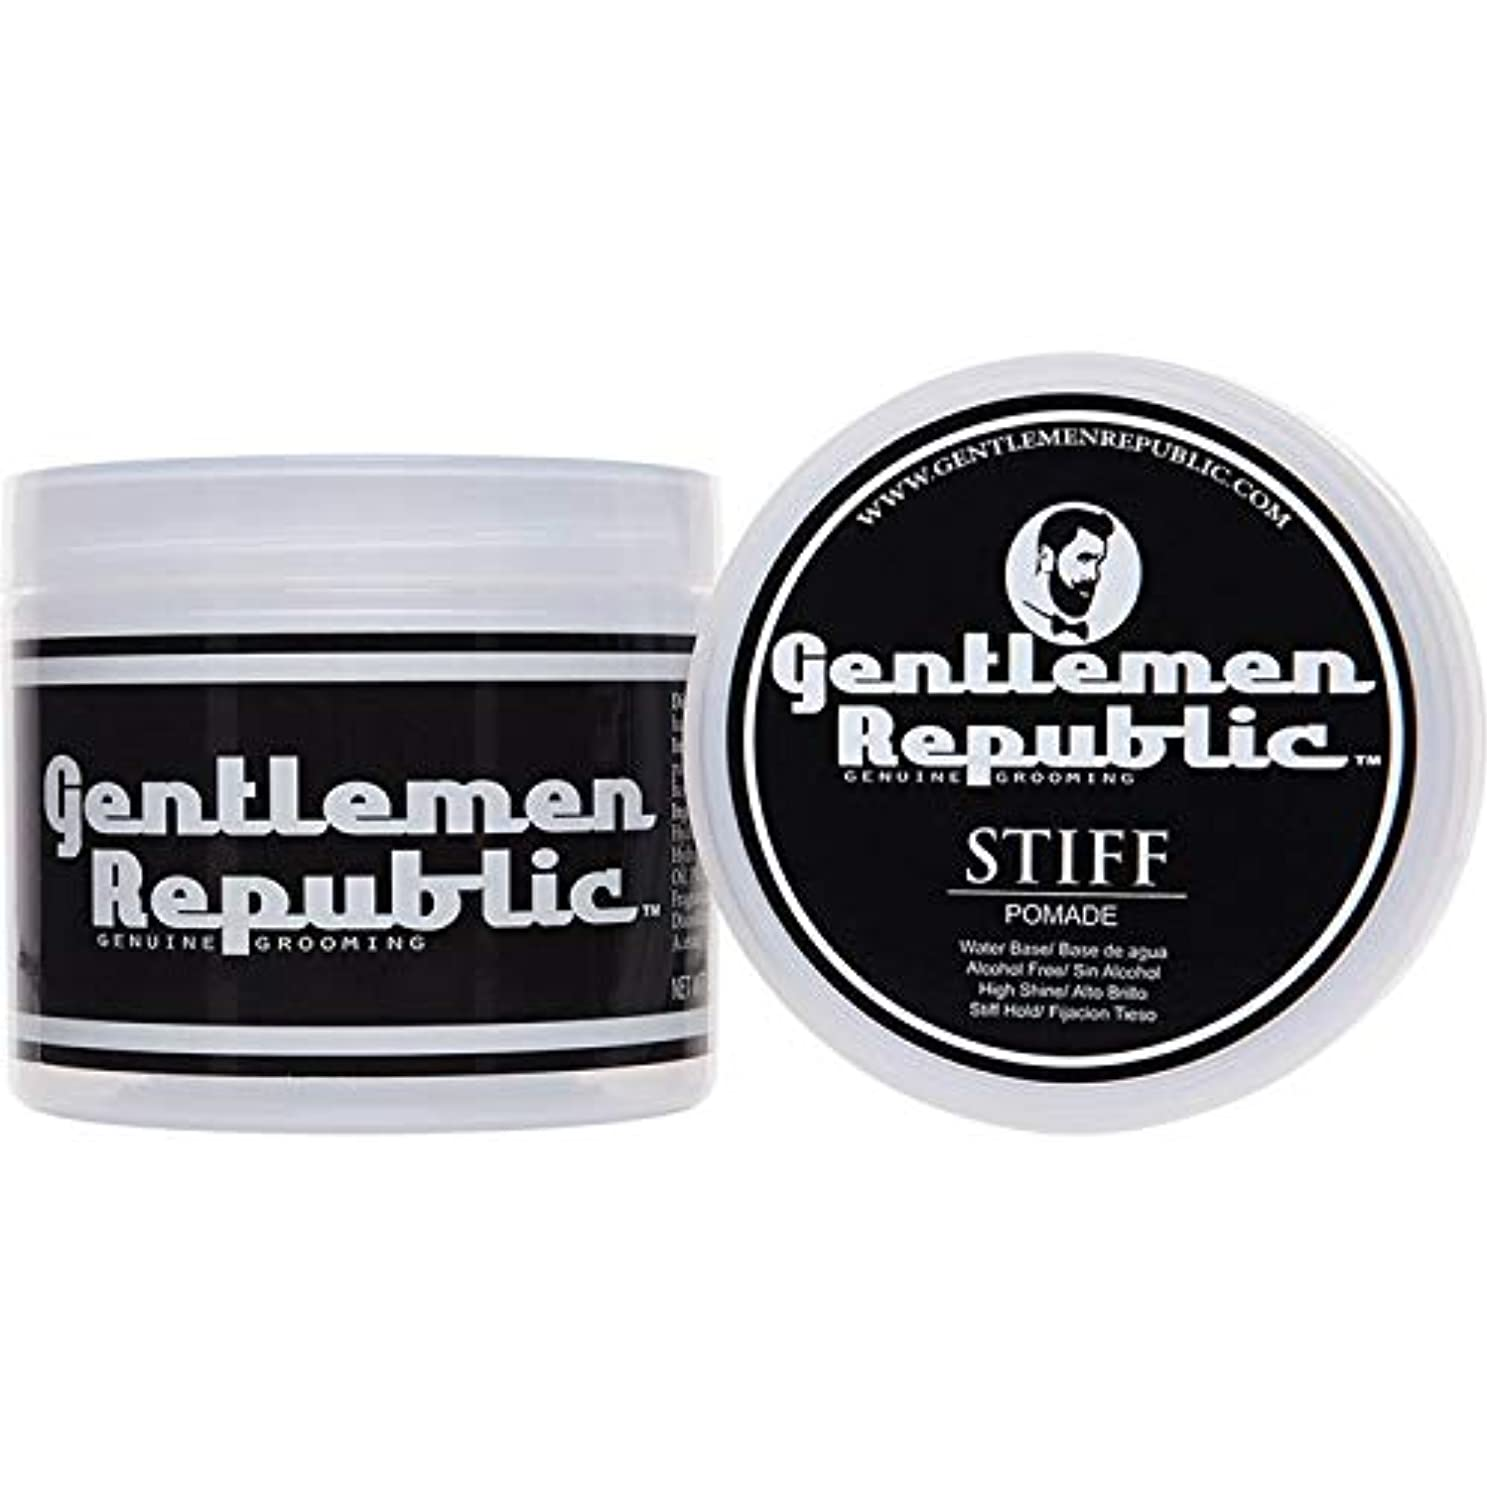 チェリー物理学者本会議Gentlemen Republic Stiff Pomade (4oz) by Gentlemen Republic